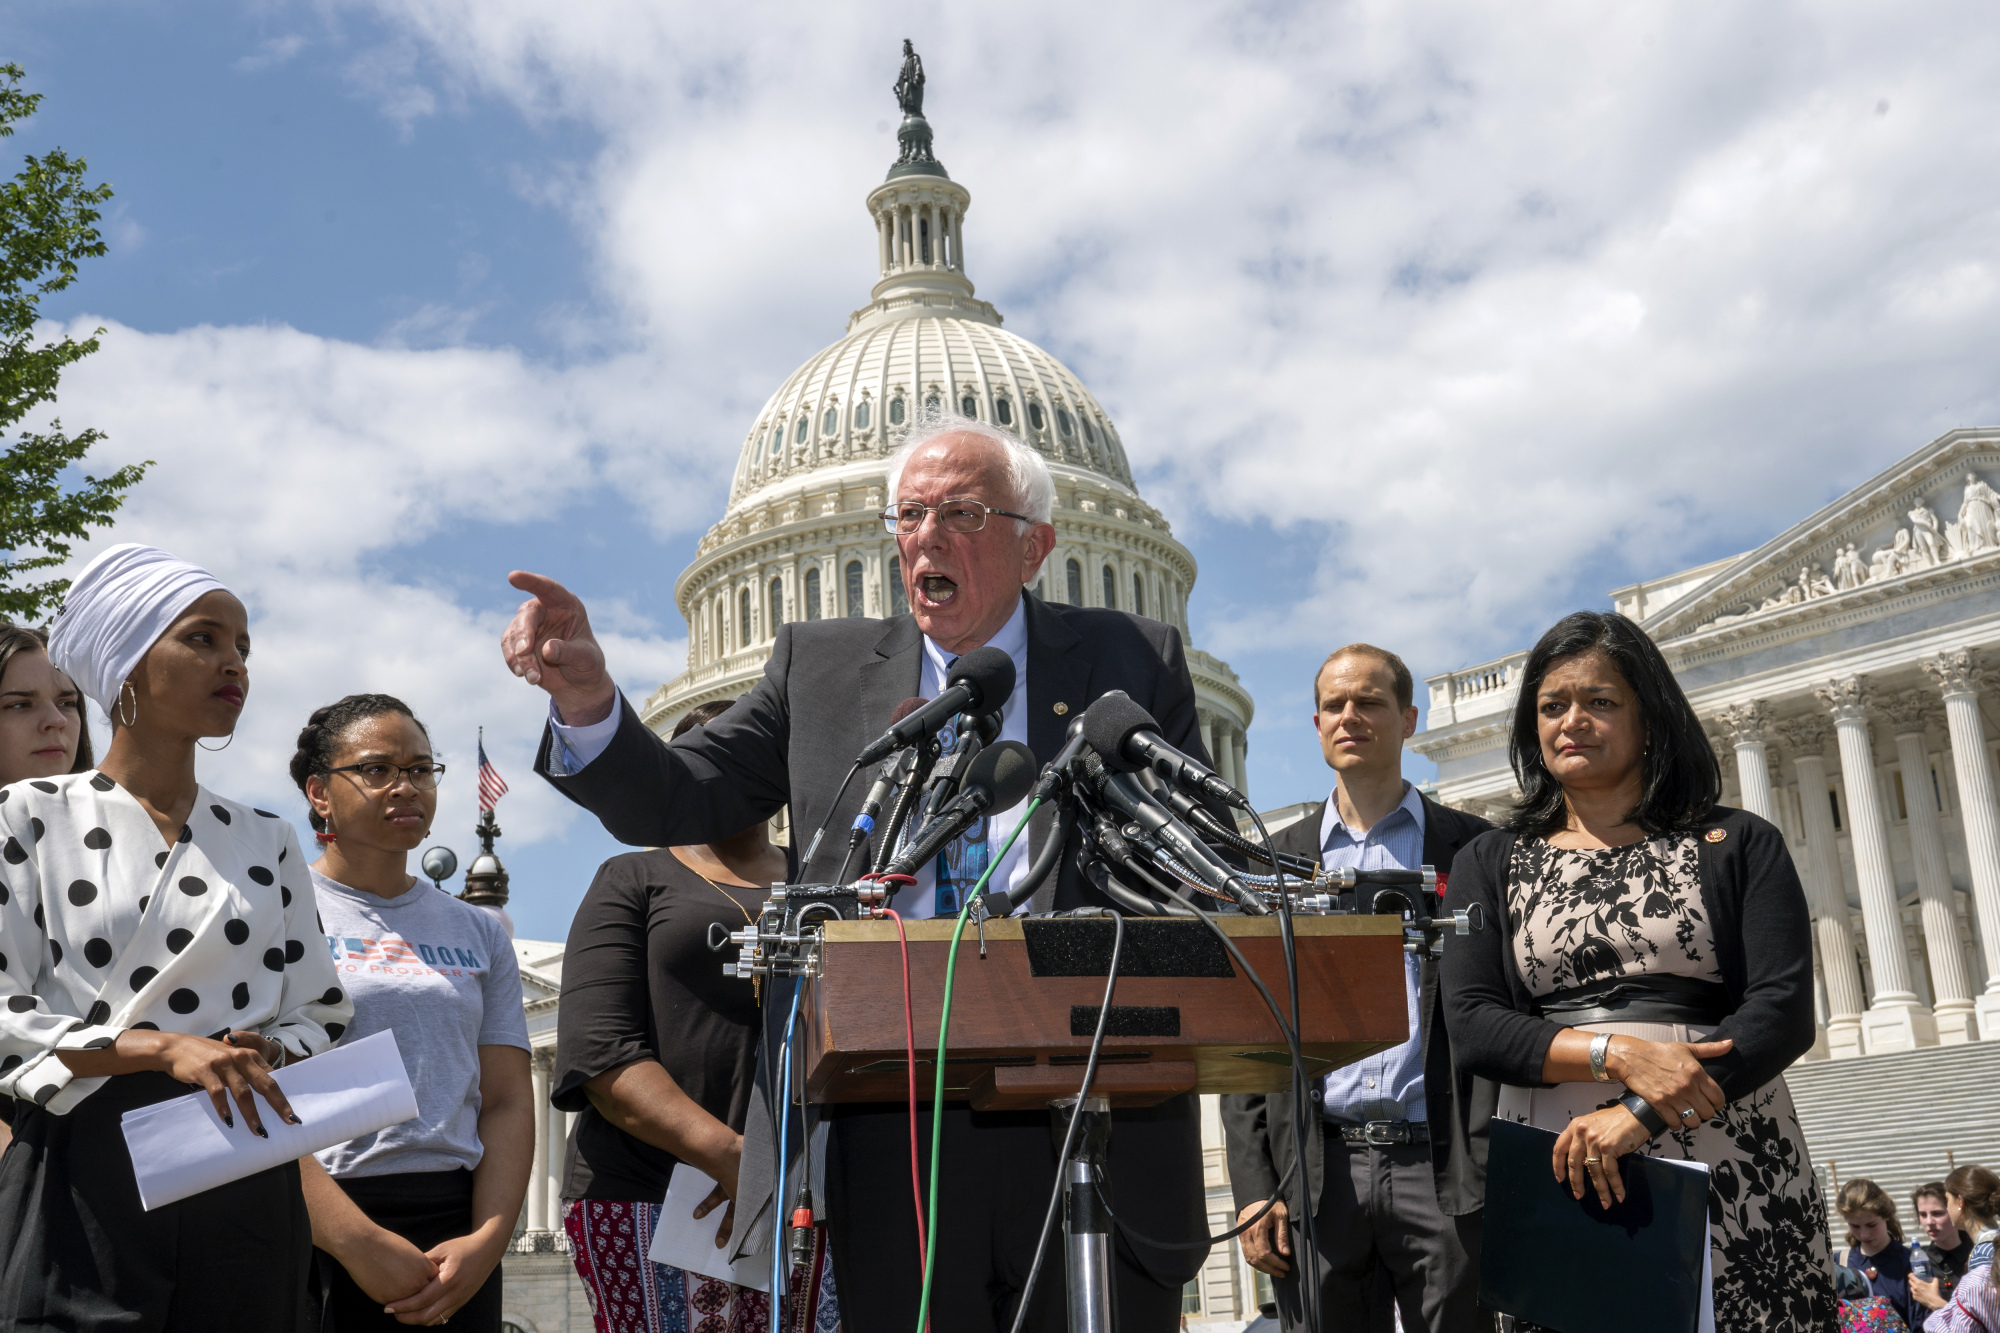 Democratic presidential candidate Sen. Bernie Sanders, I-Vt., flanked by Rep. Ilhan Omar, D-Minn. (left) and Rep. Pramila Jayapal, D-Wash., calls for legislation to cancel all student debt, at the Capitol in Washington Monday. Sanders called the student debt burden in this country the absurdity of sentencing an entire generation, the millennial generation, to a lifetime of debt for the crime of doing the right thing. | AP